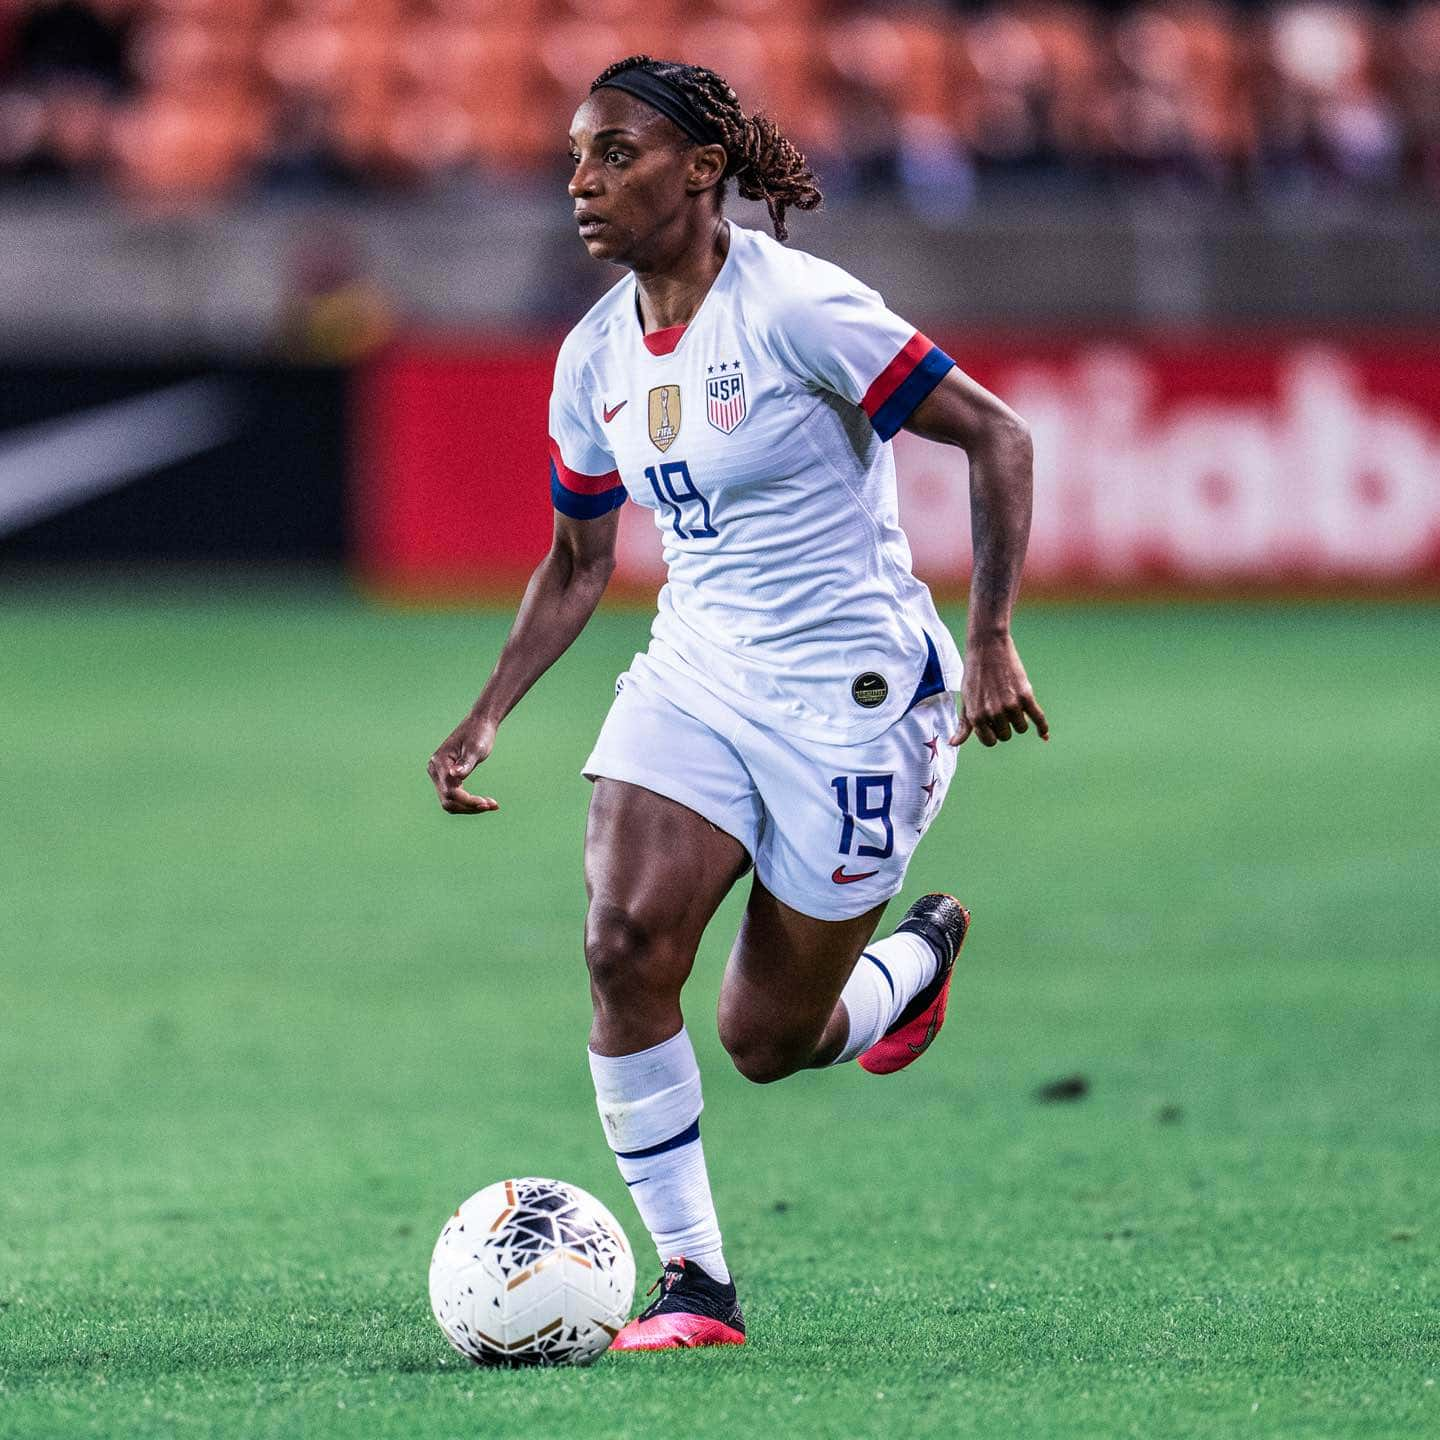 2020 Concacaf Women's Olympic Qualifying: USA vs. Panama - Preview, Schedule, TV Channels & Start Time